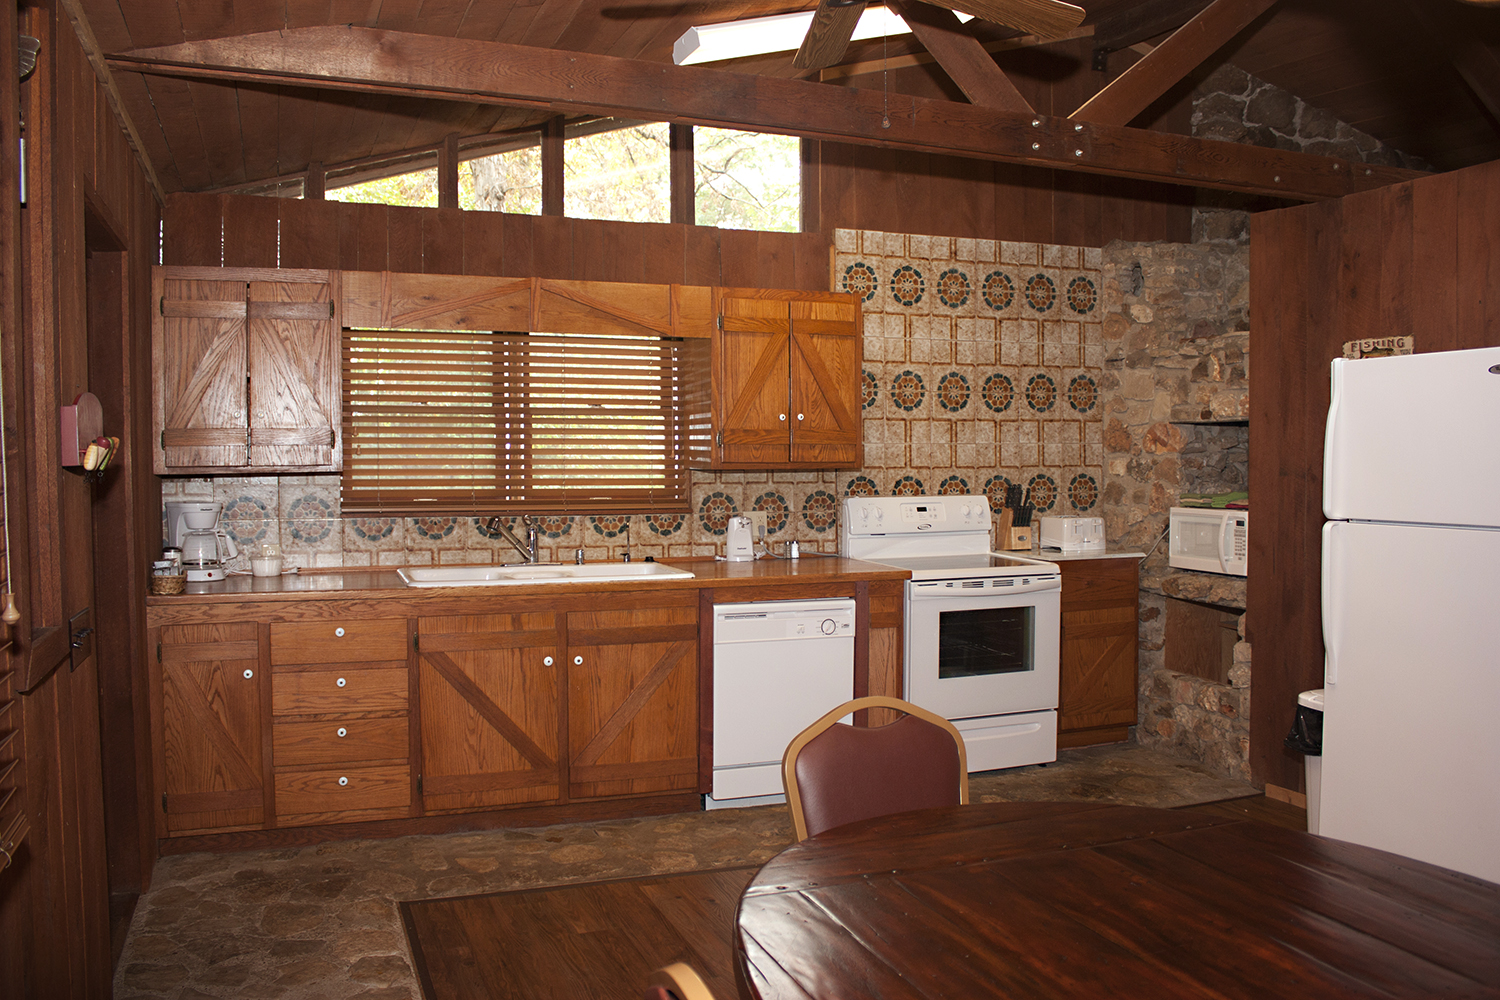 Rustic Lodge kitchen.jpg